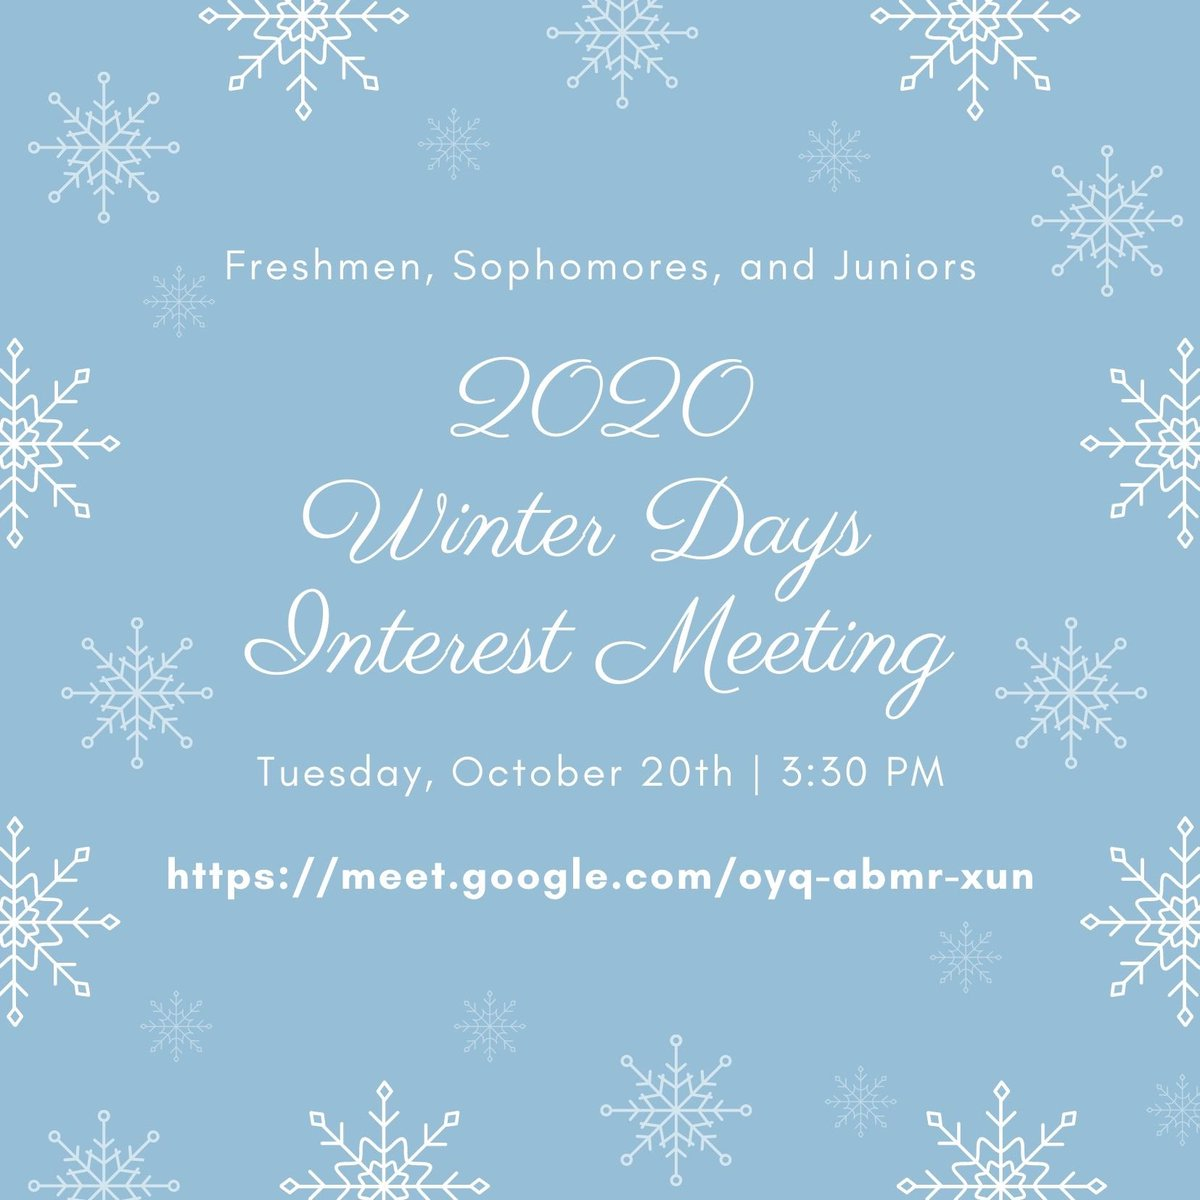 Winter days meeting this Tuesday at 3:30 pm!!! https://t.co/bn3hs7mScn